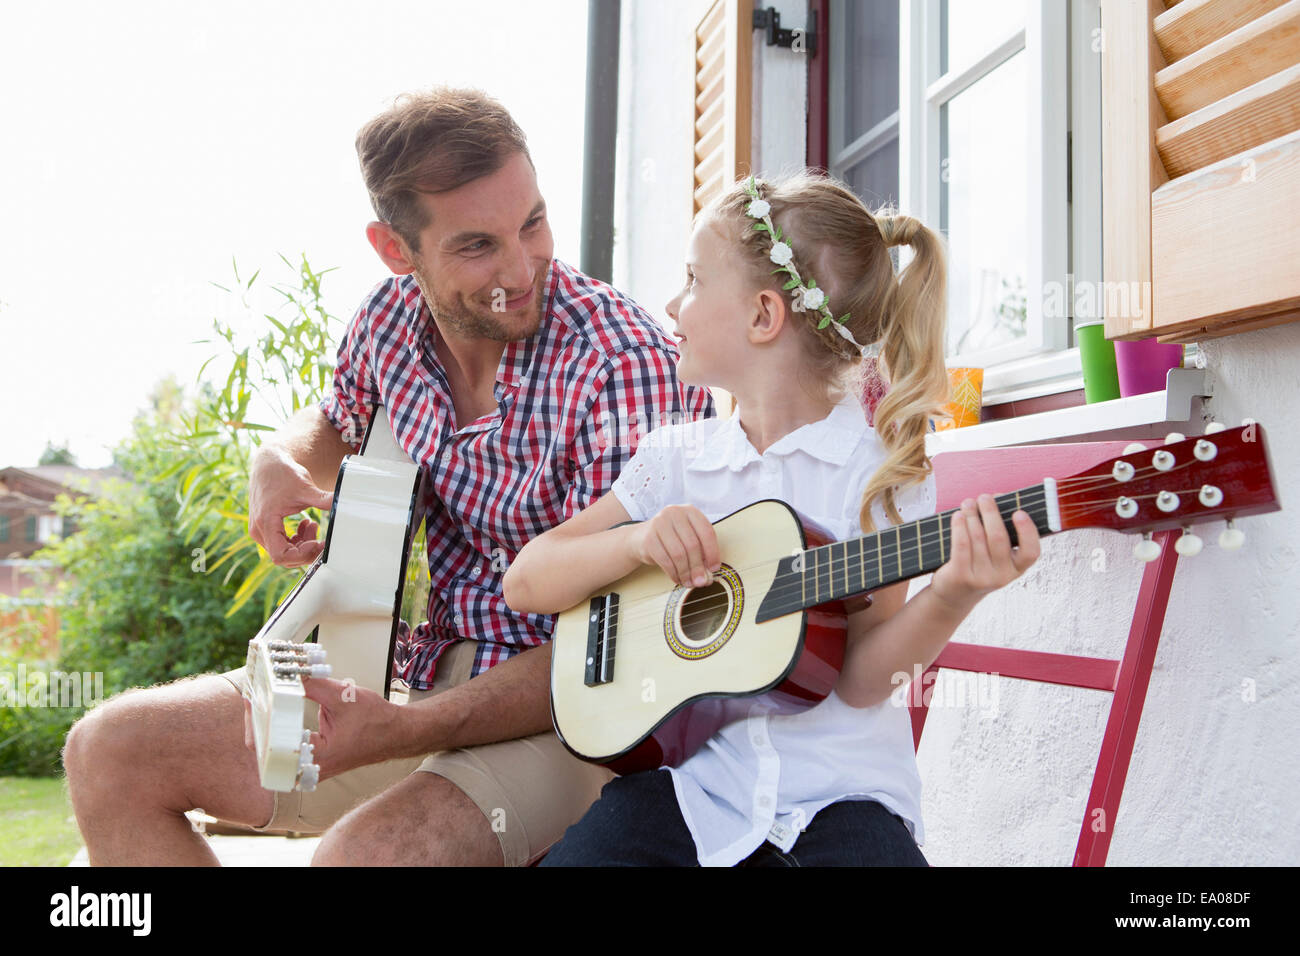 Girl playing guitar with father - Stock Image